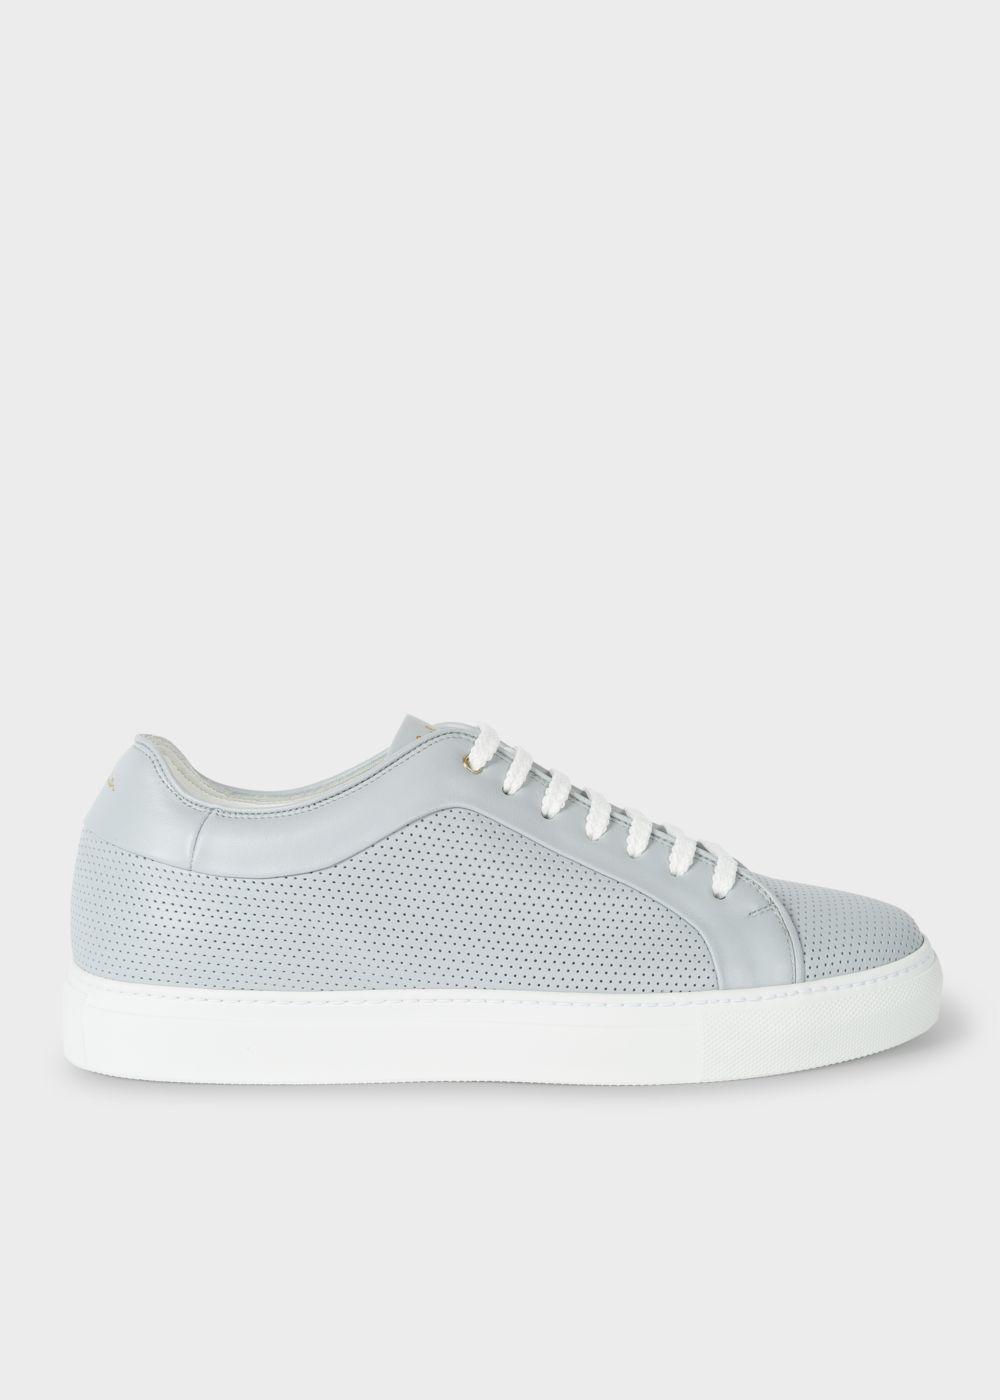 Paul Smith Men's Grey Perforated Leather 'Basso' Trainers